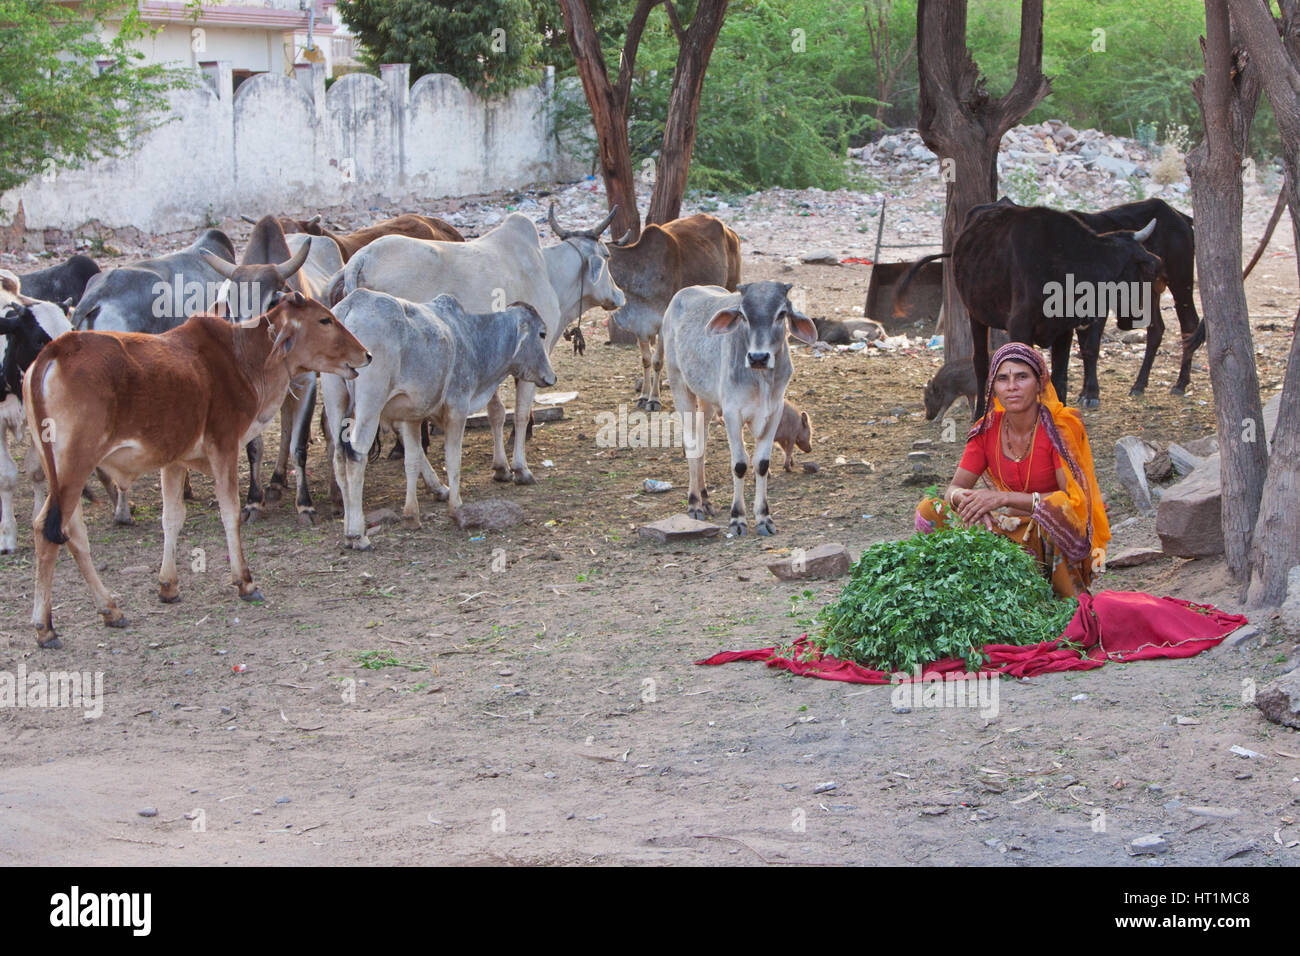 Woman selling grass stalks to passersby at Pushkar, India, for them to feed to her cows. The animals are revered - Stock Image